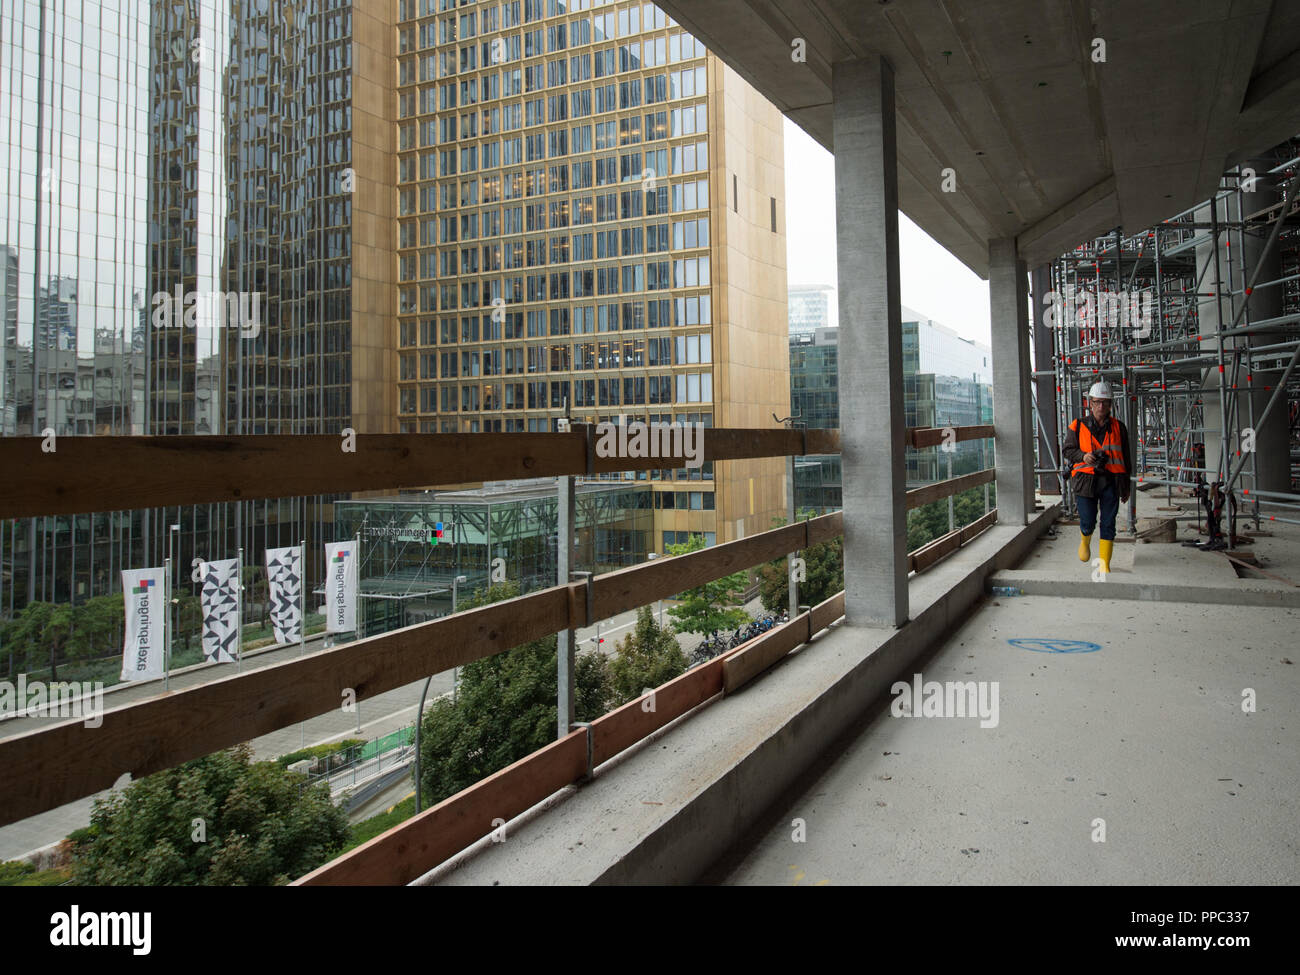 584f71e91f Feature - A view from inside the shell to the publishing house Axel  Springer SE. Press appointment - guided tour of the new Axel Springer  building in Berlin ...